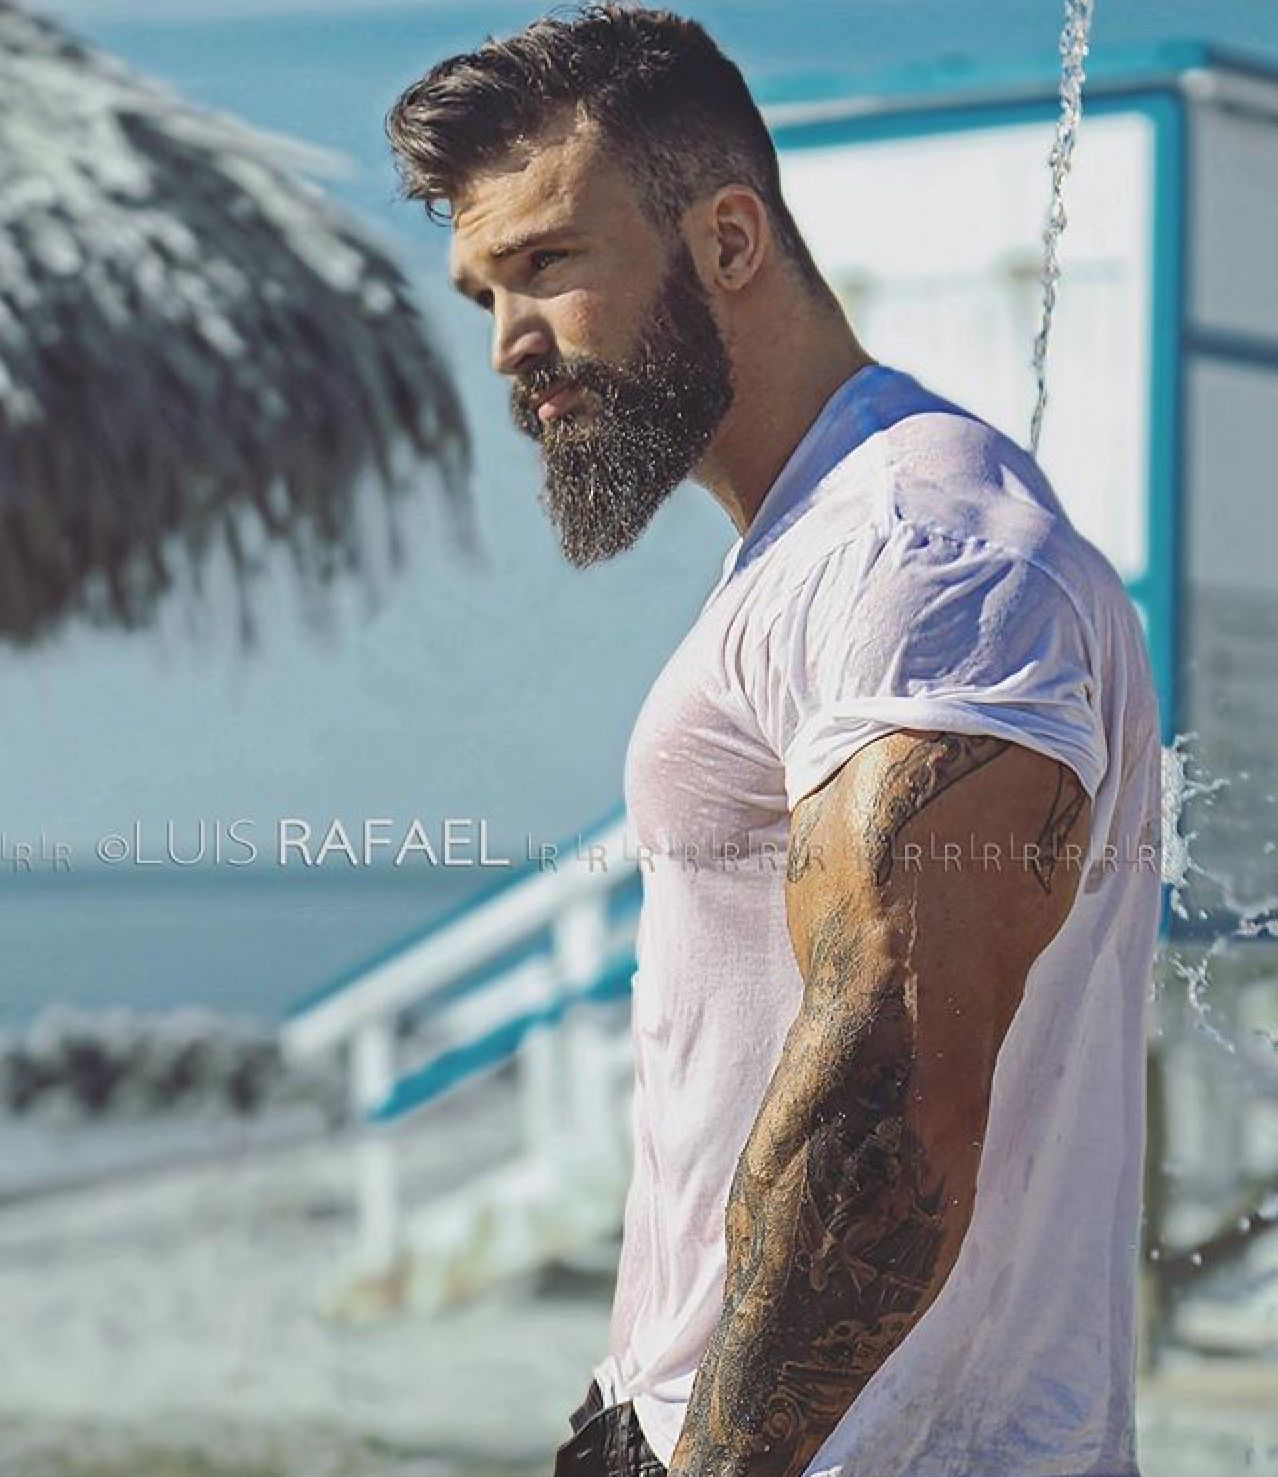 Sigh Why Dont We See More Wet T Shirt Contests For Men I Mean